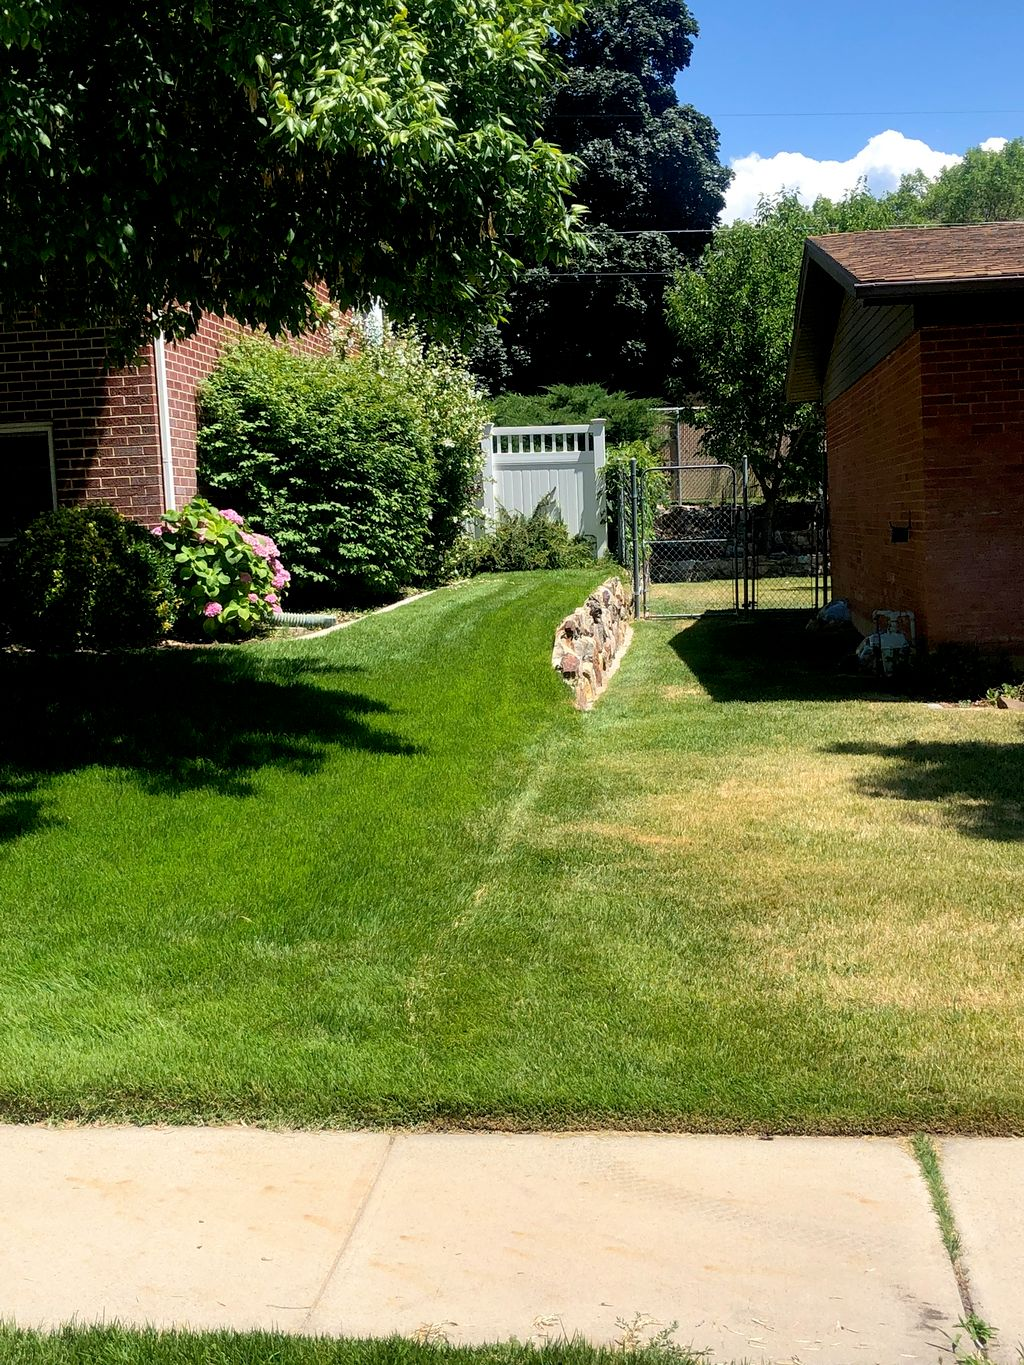 Difference between our clients lawn and the neighbors